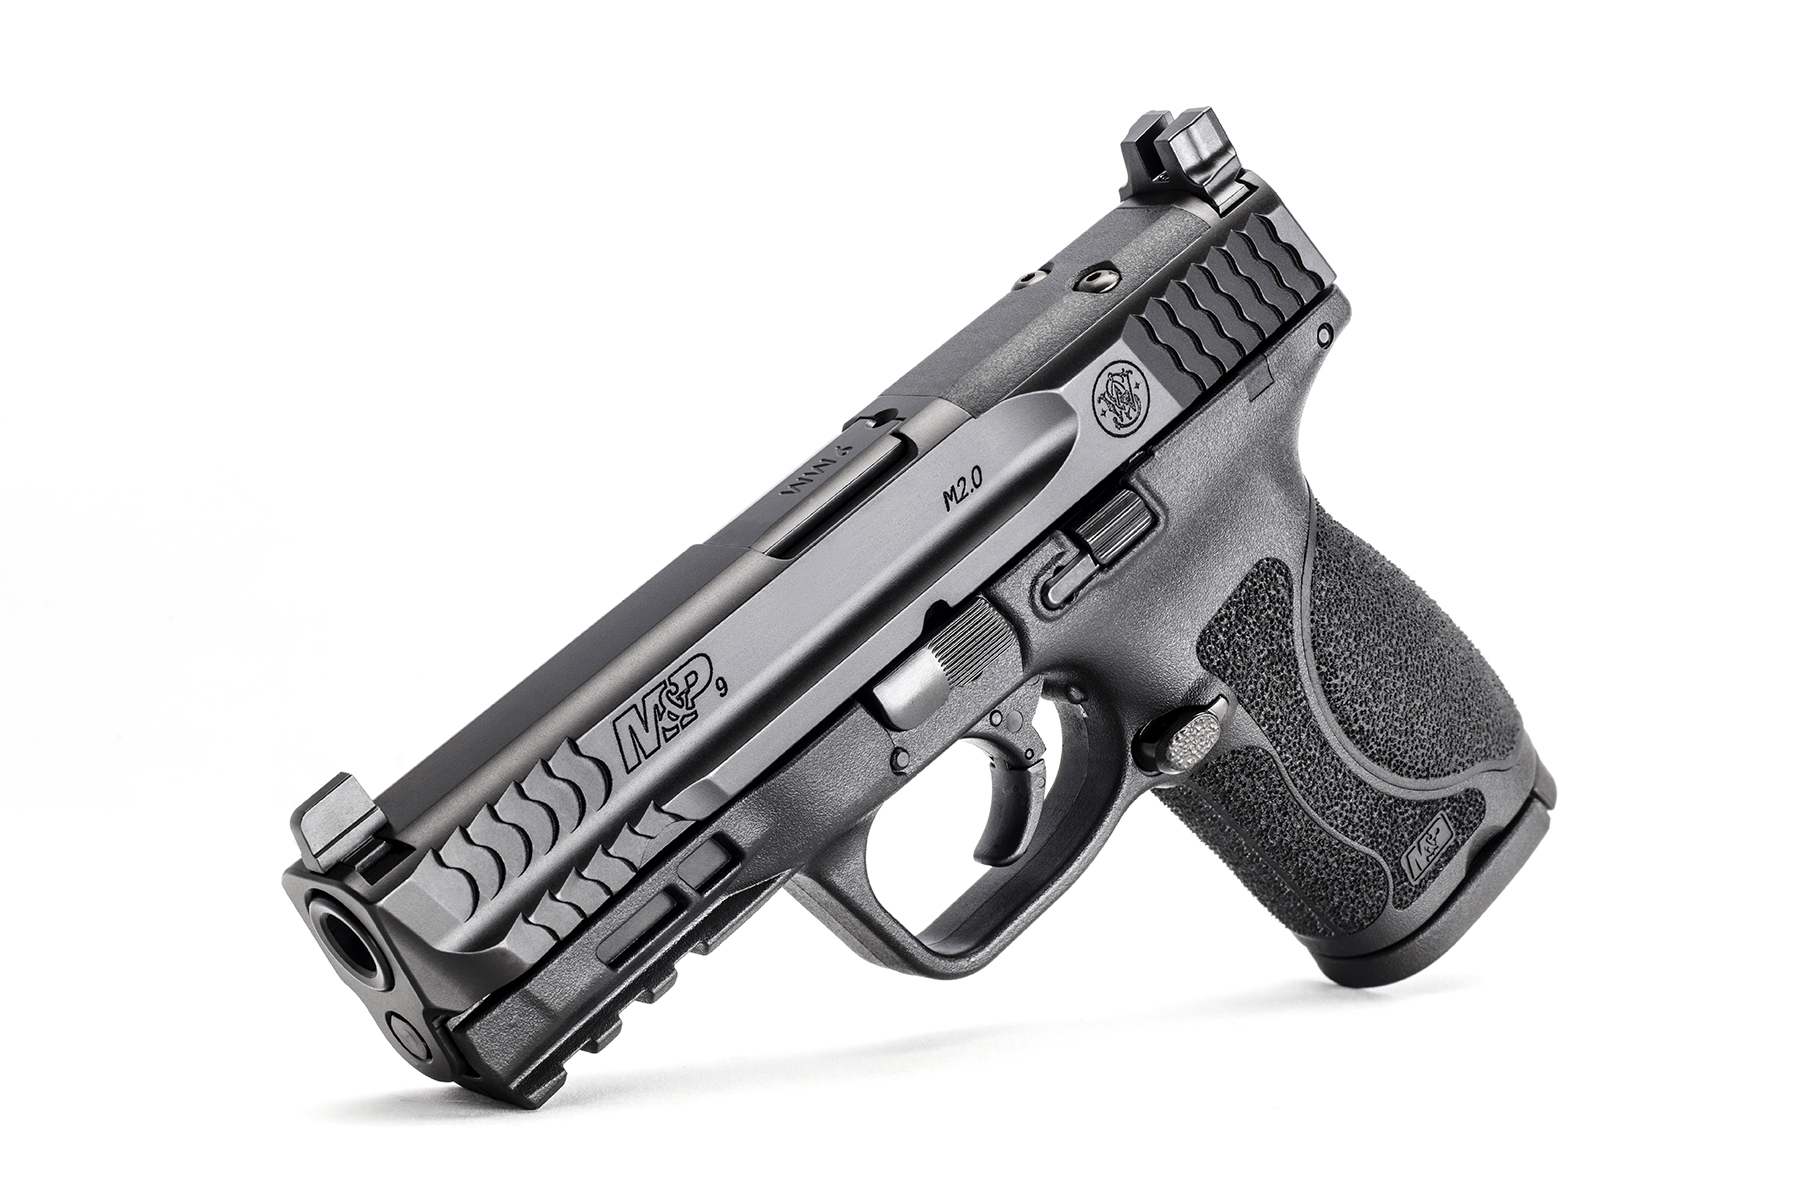 Smith & Wesson Launches M&P9 M2.0 Compact Optics Ready Pistol